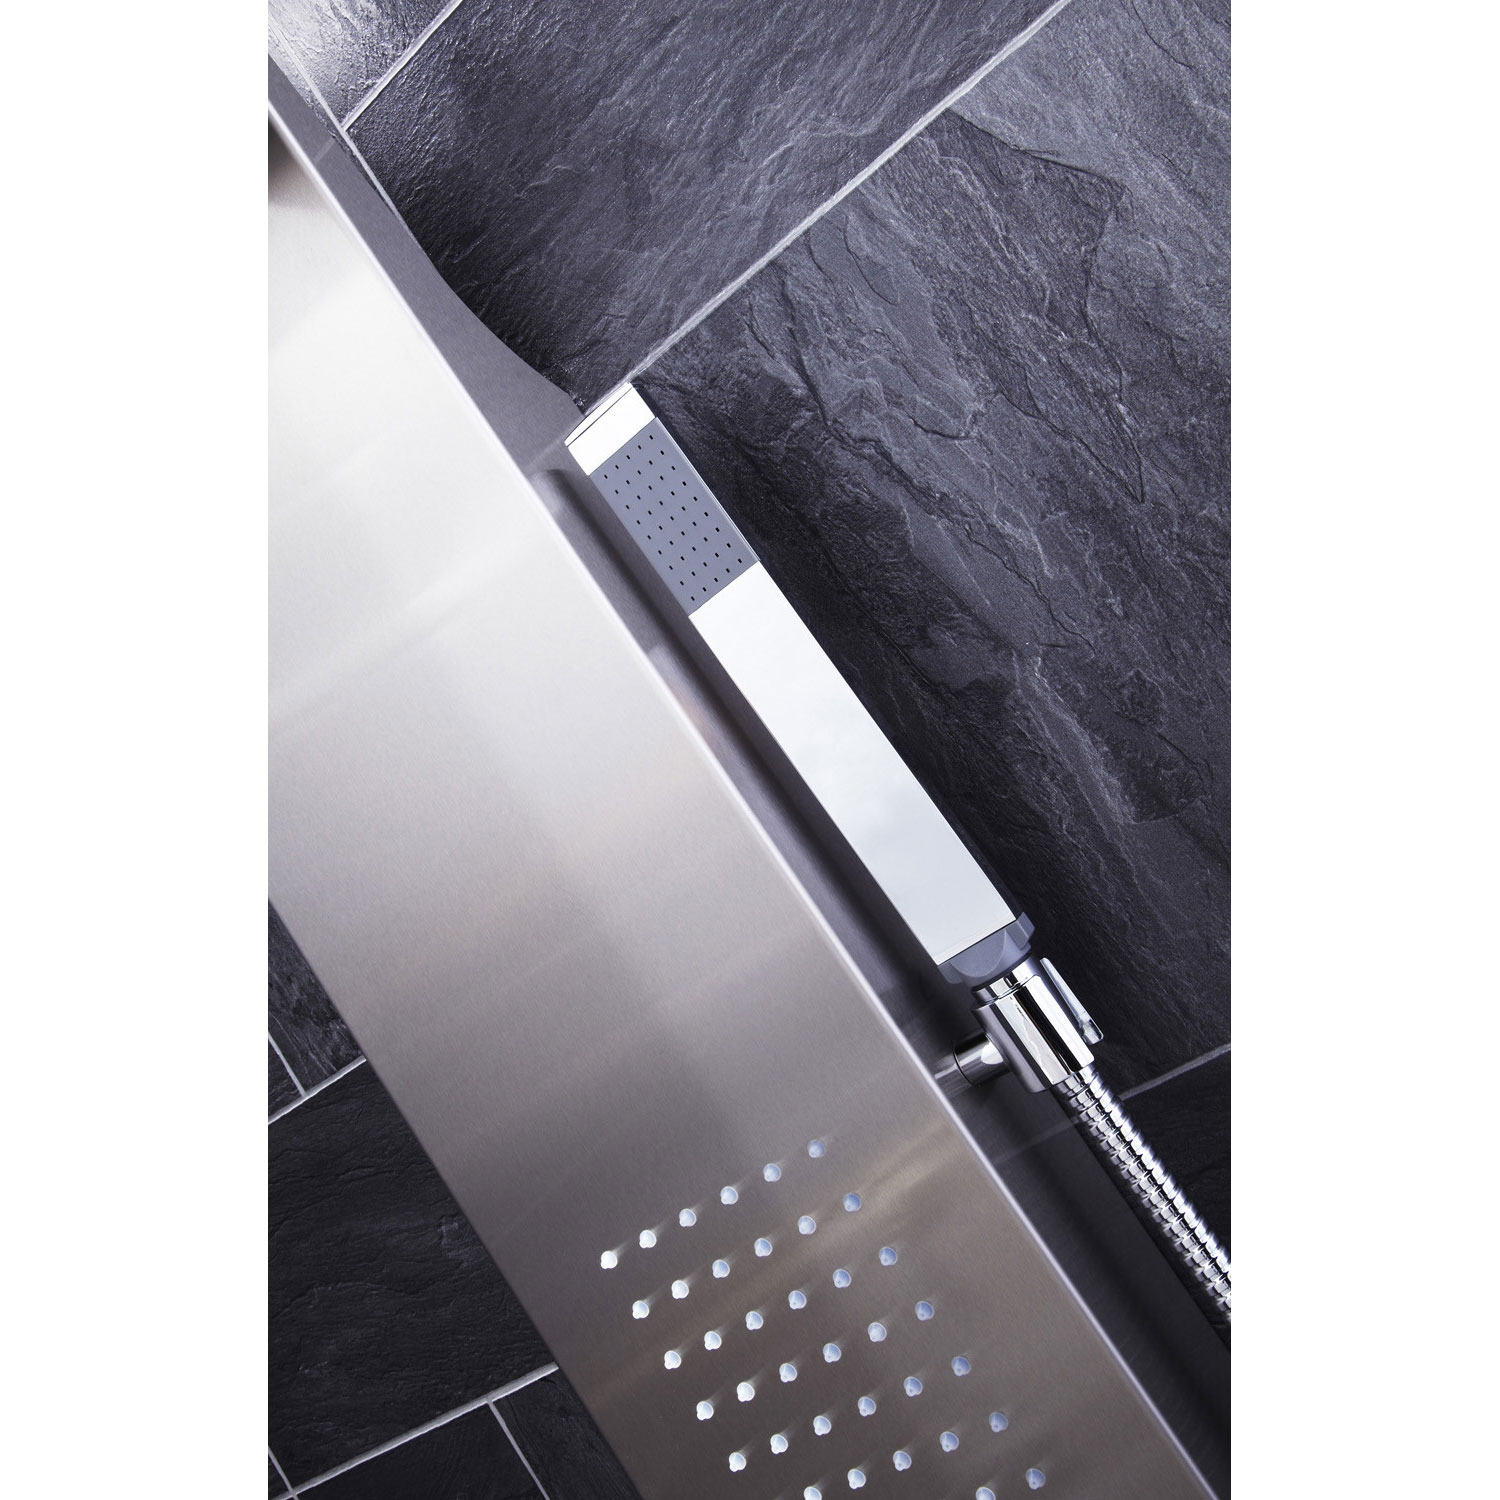 Verona Modo Thermostatic Shower Panel 2 Built-in Body Jets with Shower Hand-5